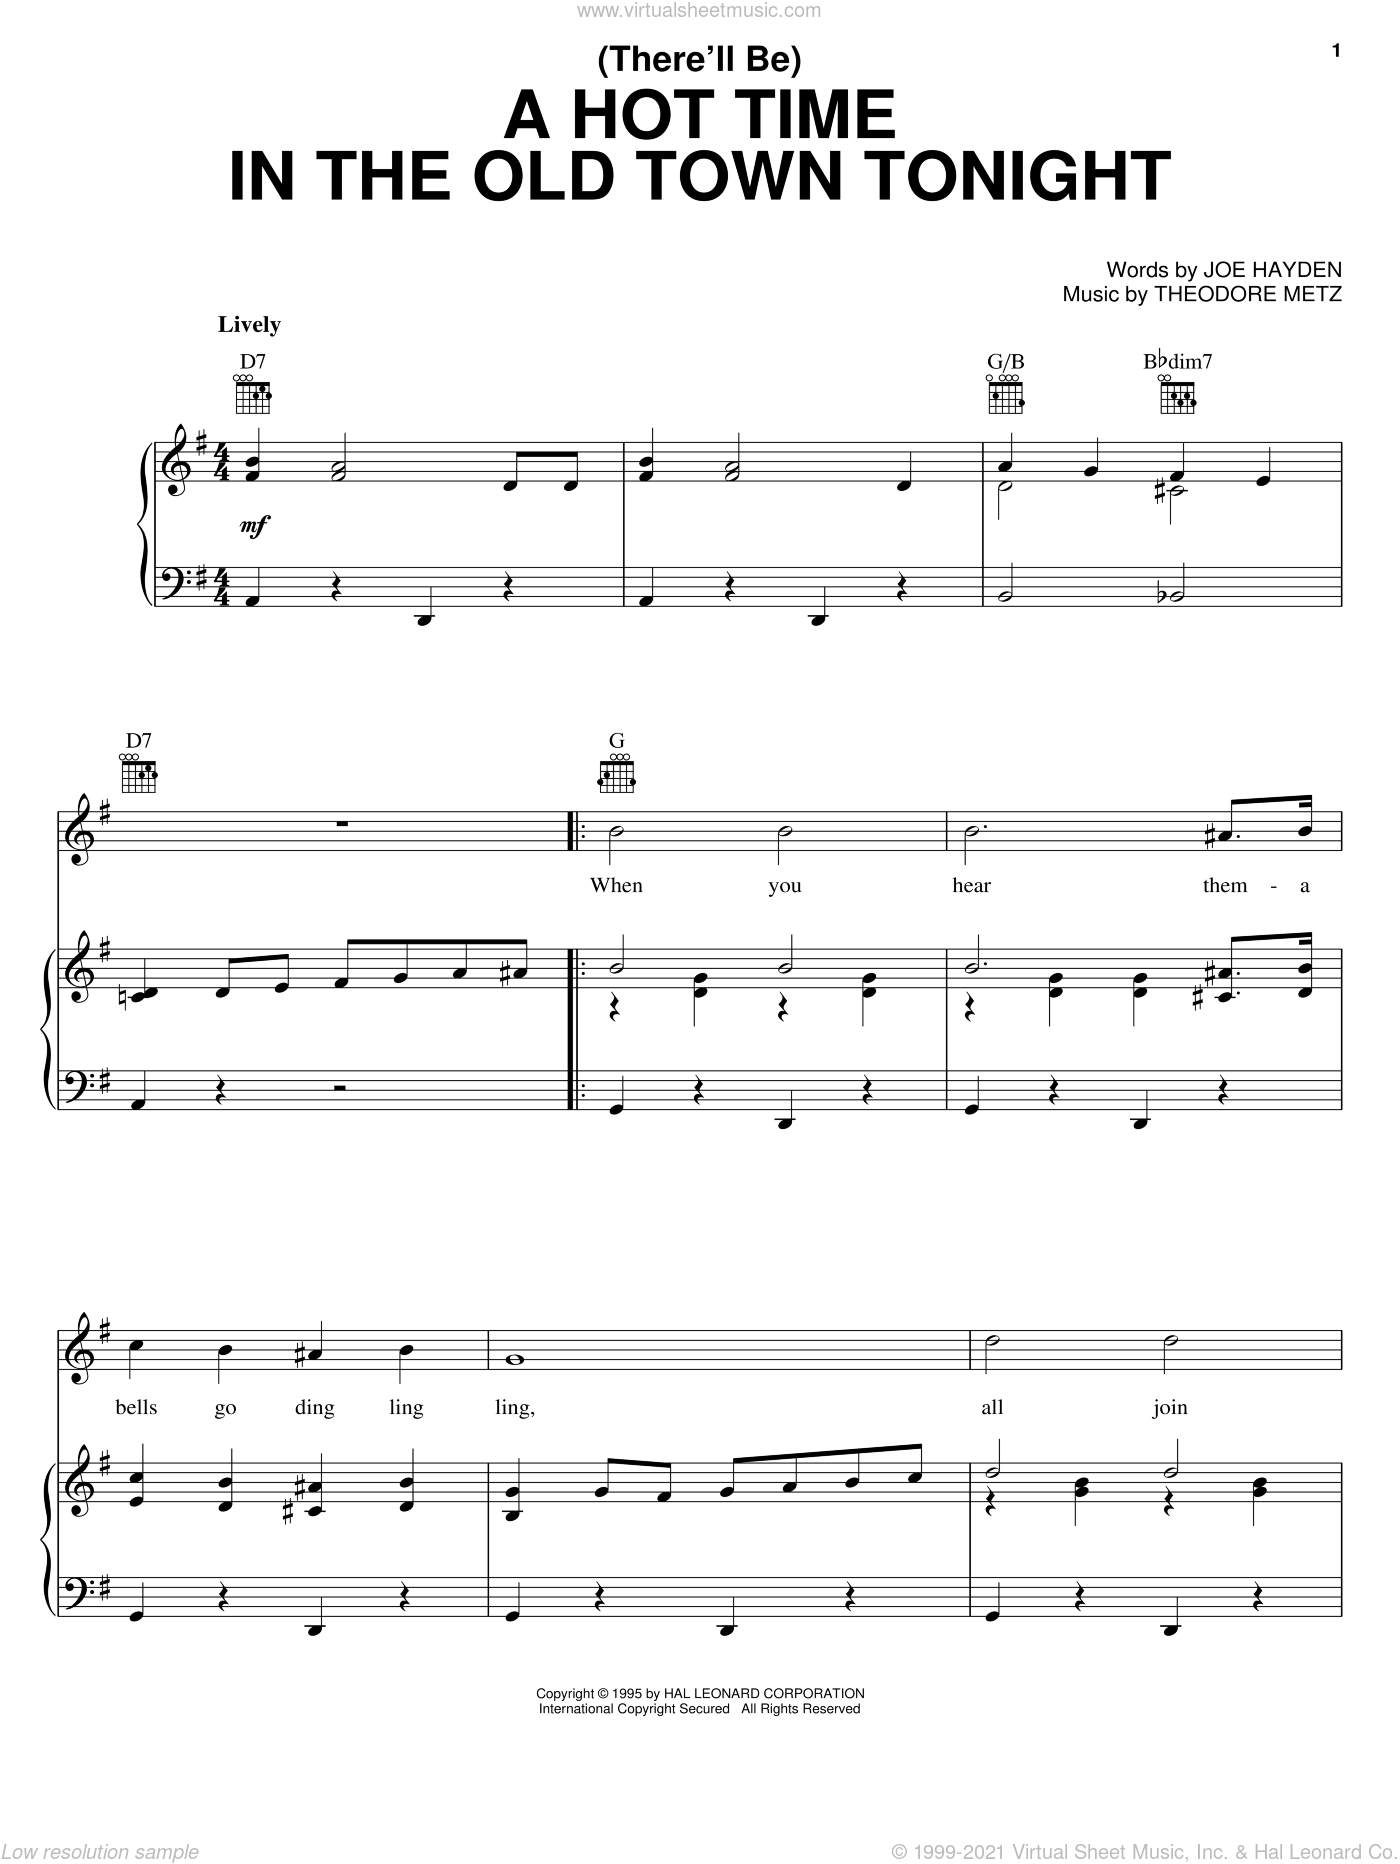 (There'll Be) A Hot Time In The Old Town Tonight sheet music for voice, piano or guitar by Theodore M. Metz